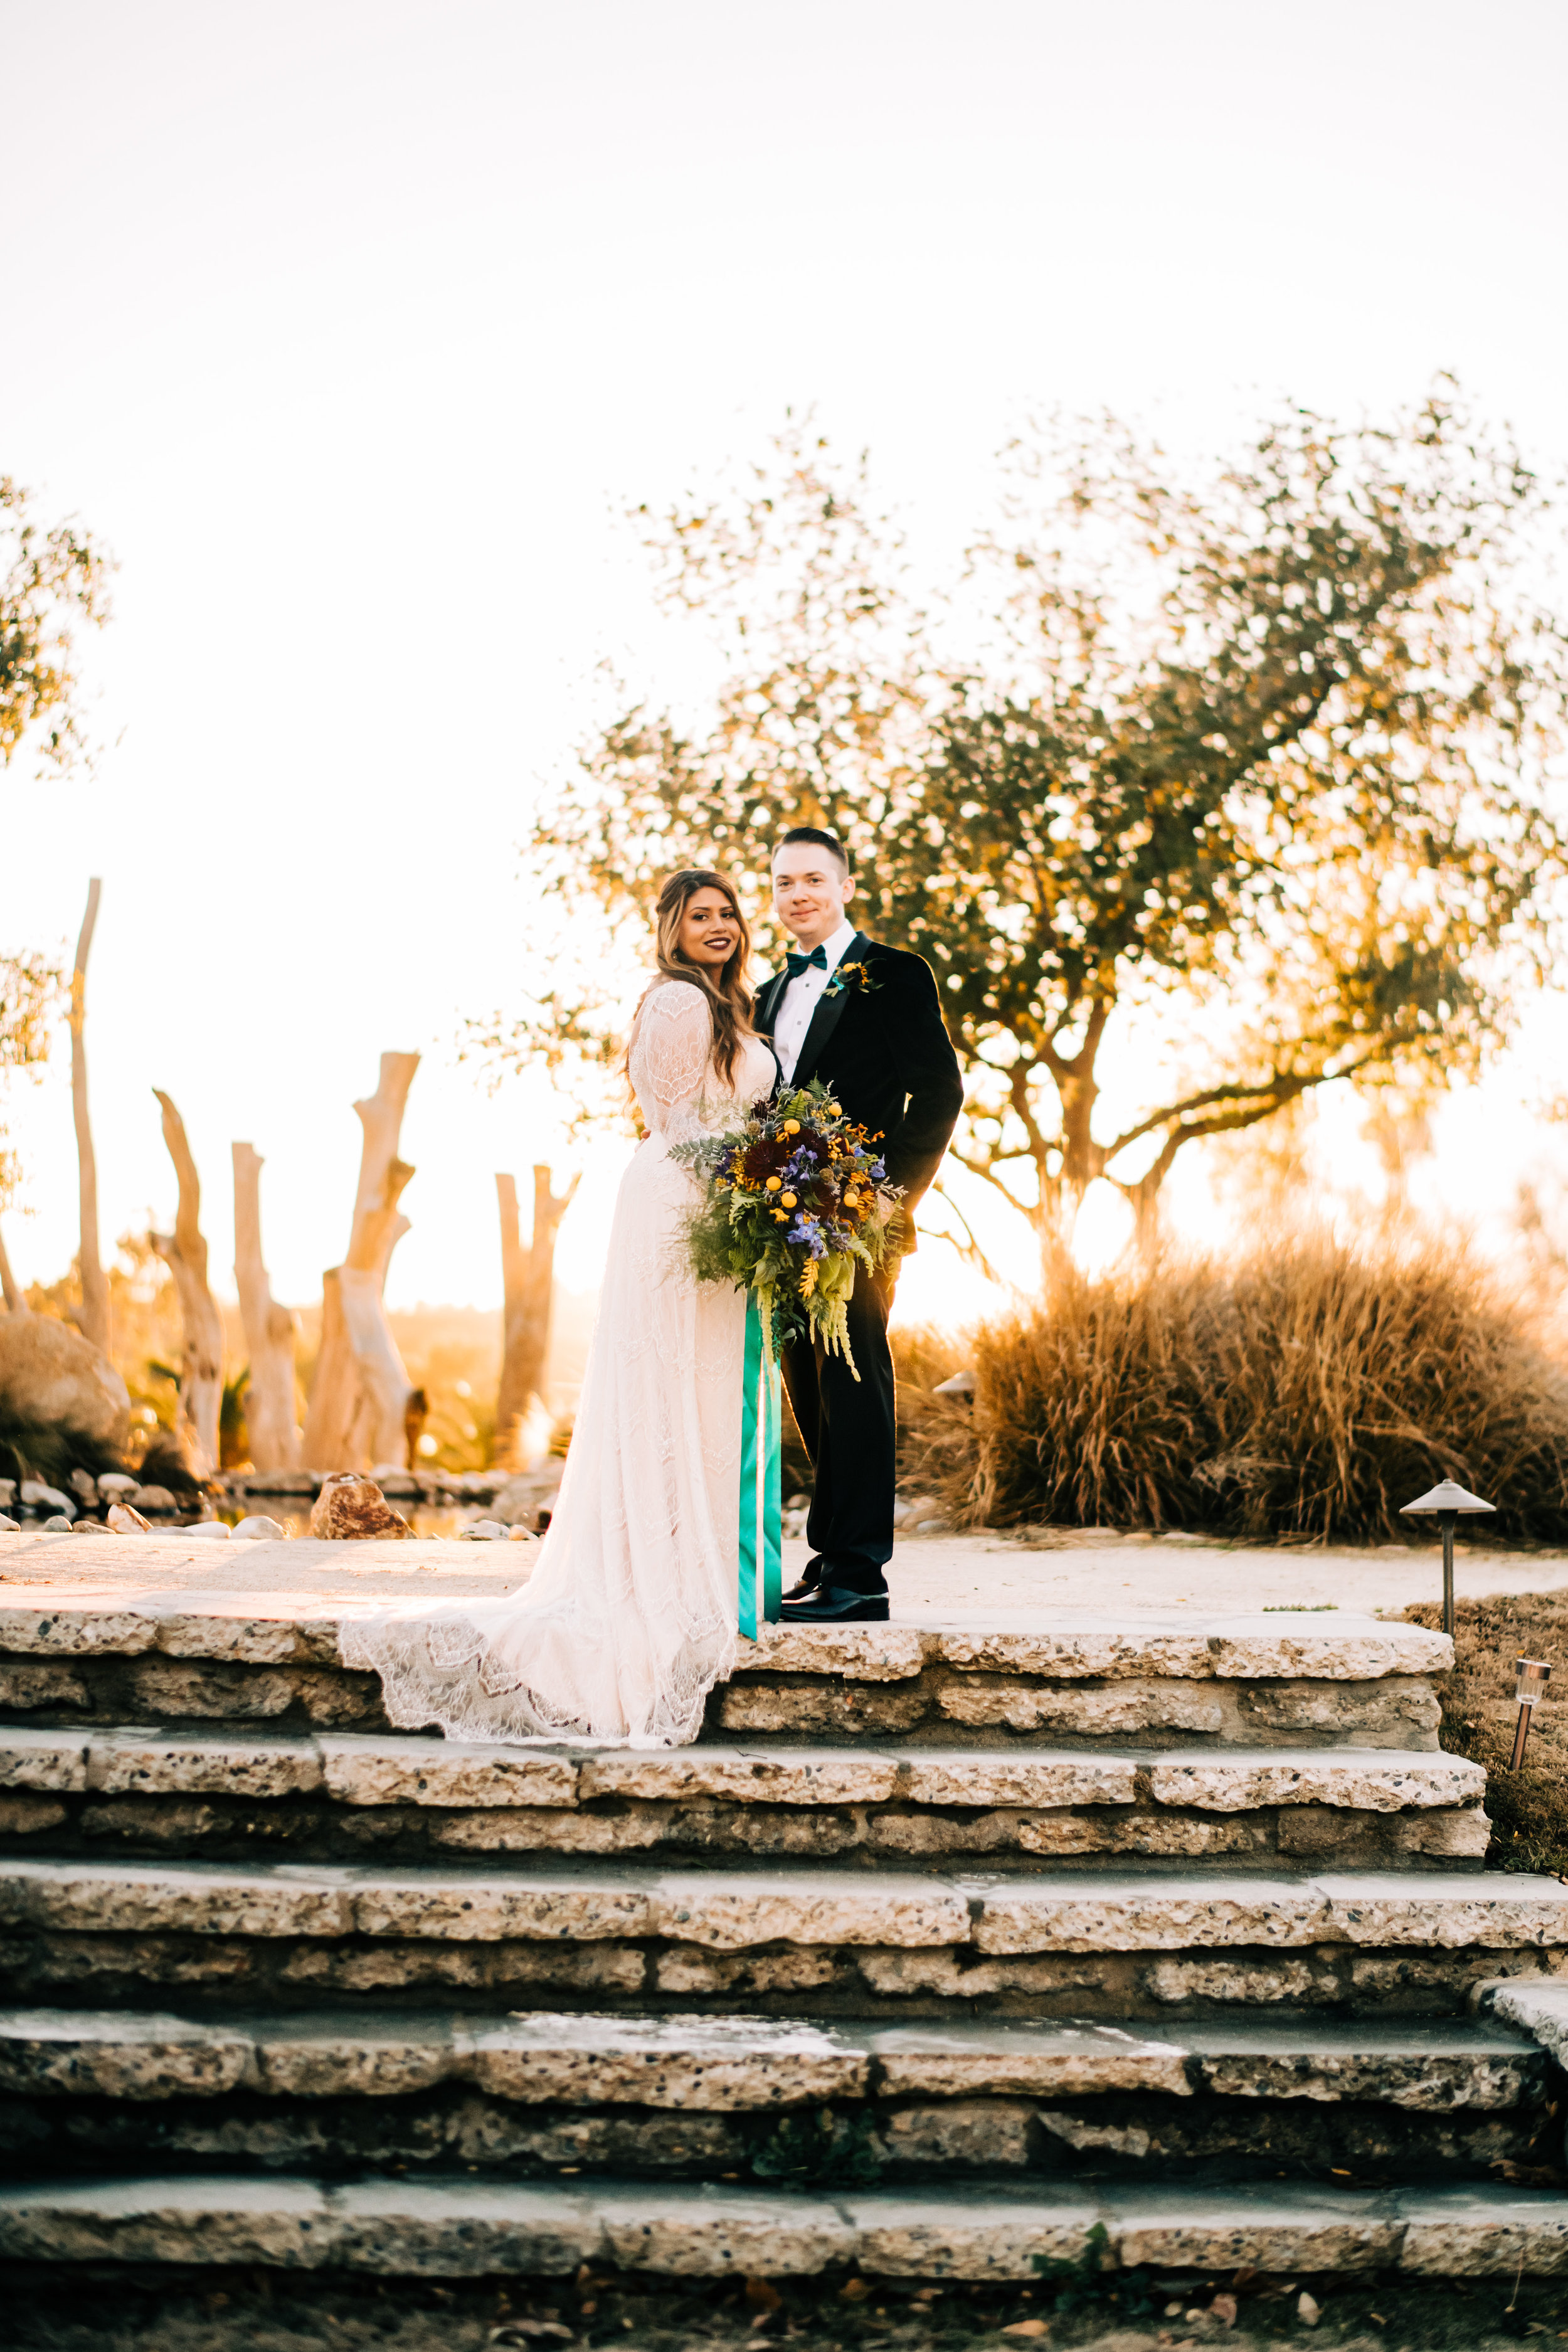 bay area nontraditional wedding photographer southern california boho wedding love light magic san francisco oakland northern california-900.jpg